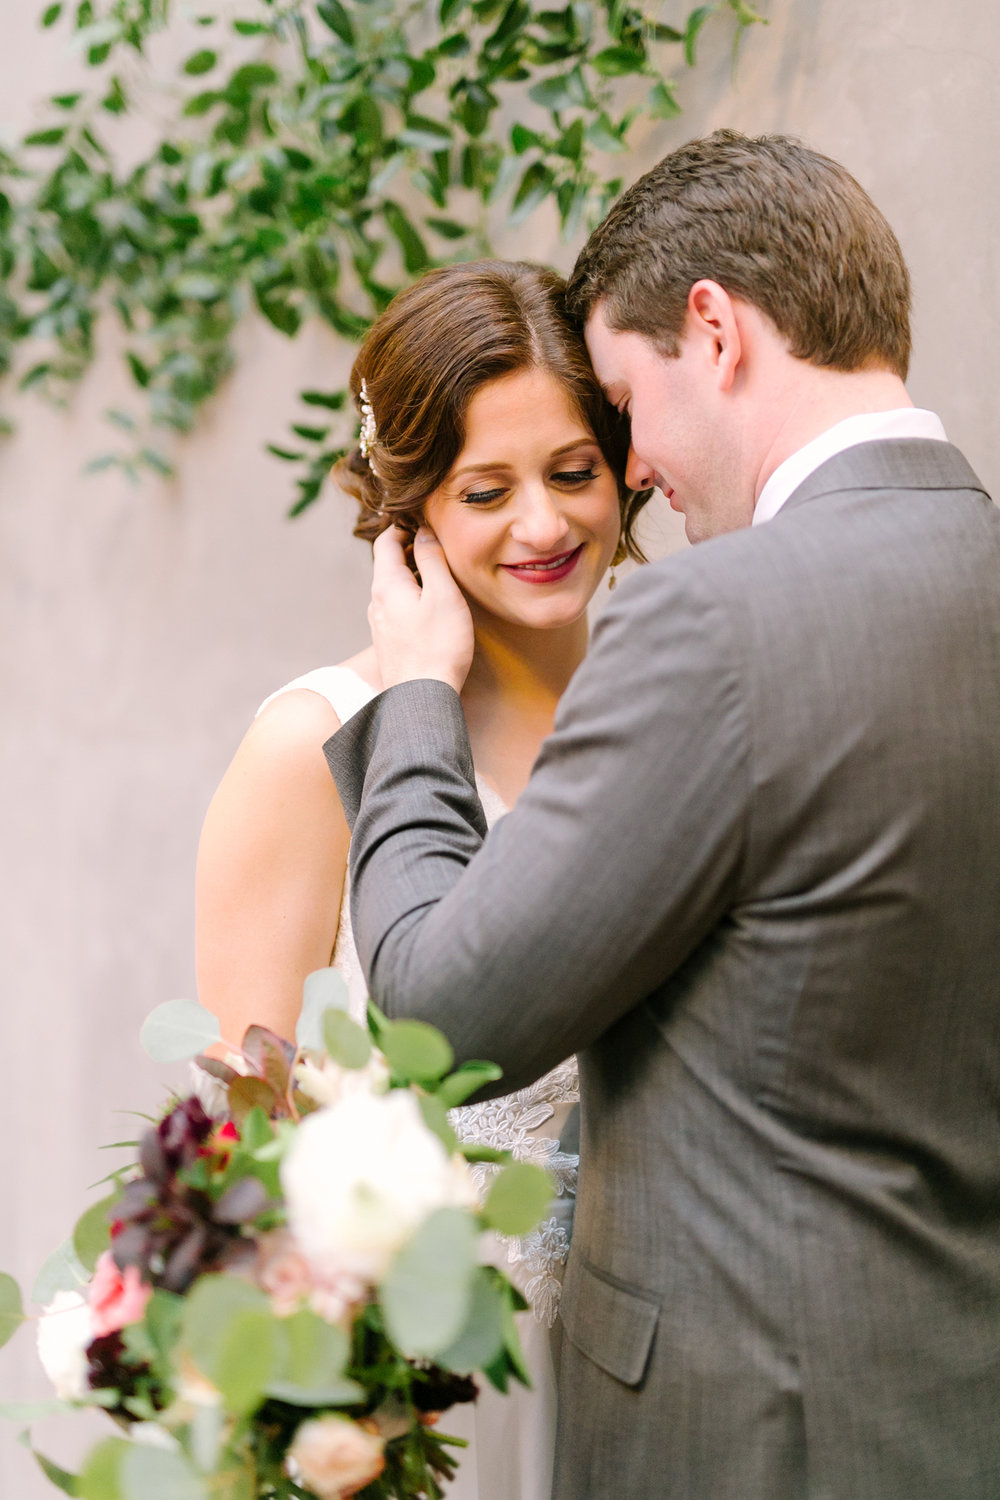 Austin_Wedding_Photographer_Kimberly_Brooke_Photographic_080.jpg